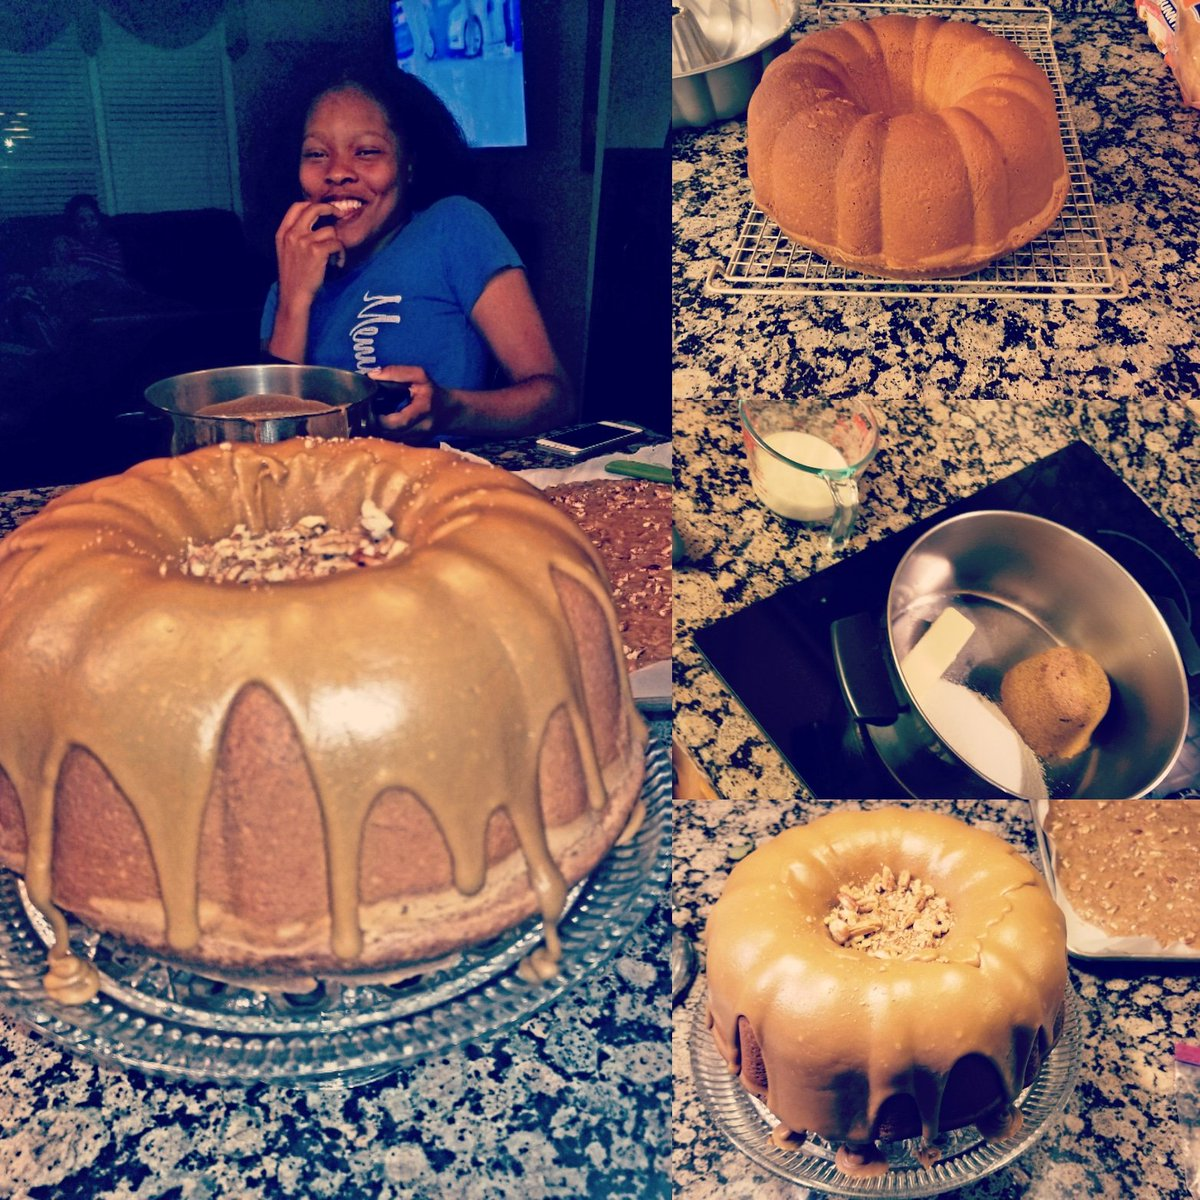 Cool Louis C Brownlee On Twitter Homemade Birthday Cake And Caramel Funny Birthday Cards Online Alyptdamsfinfo